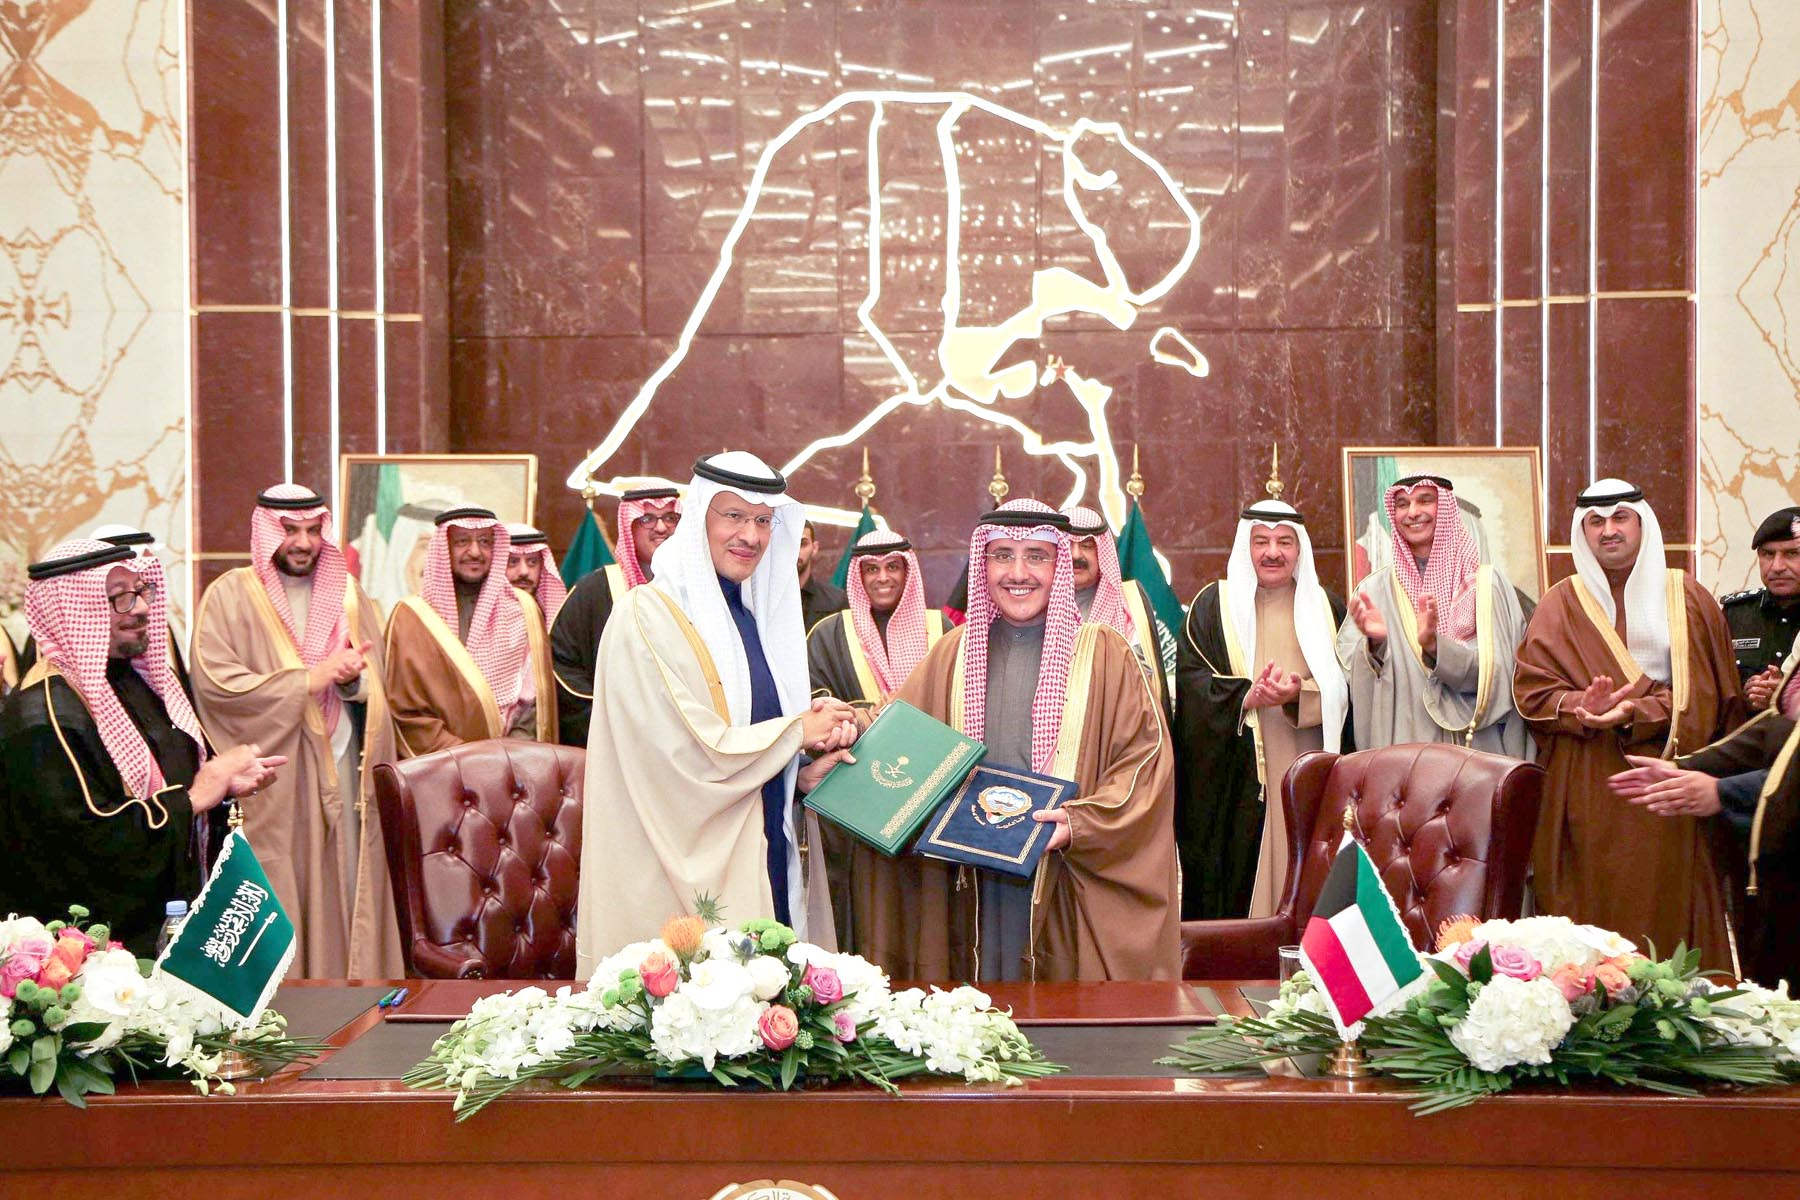 Kuwaiti Foreign Minister Ahmed Nasser al-Mohamed (L) and Saudi Oil Minister Prince Abdulaziz bin Salman Al Saud during an official ceremony in Kuwait City, December 24.             (KUNA)